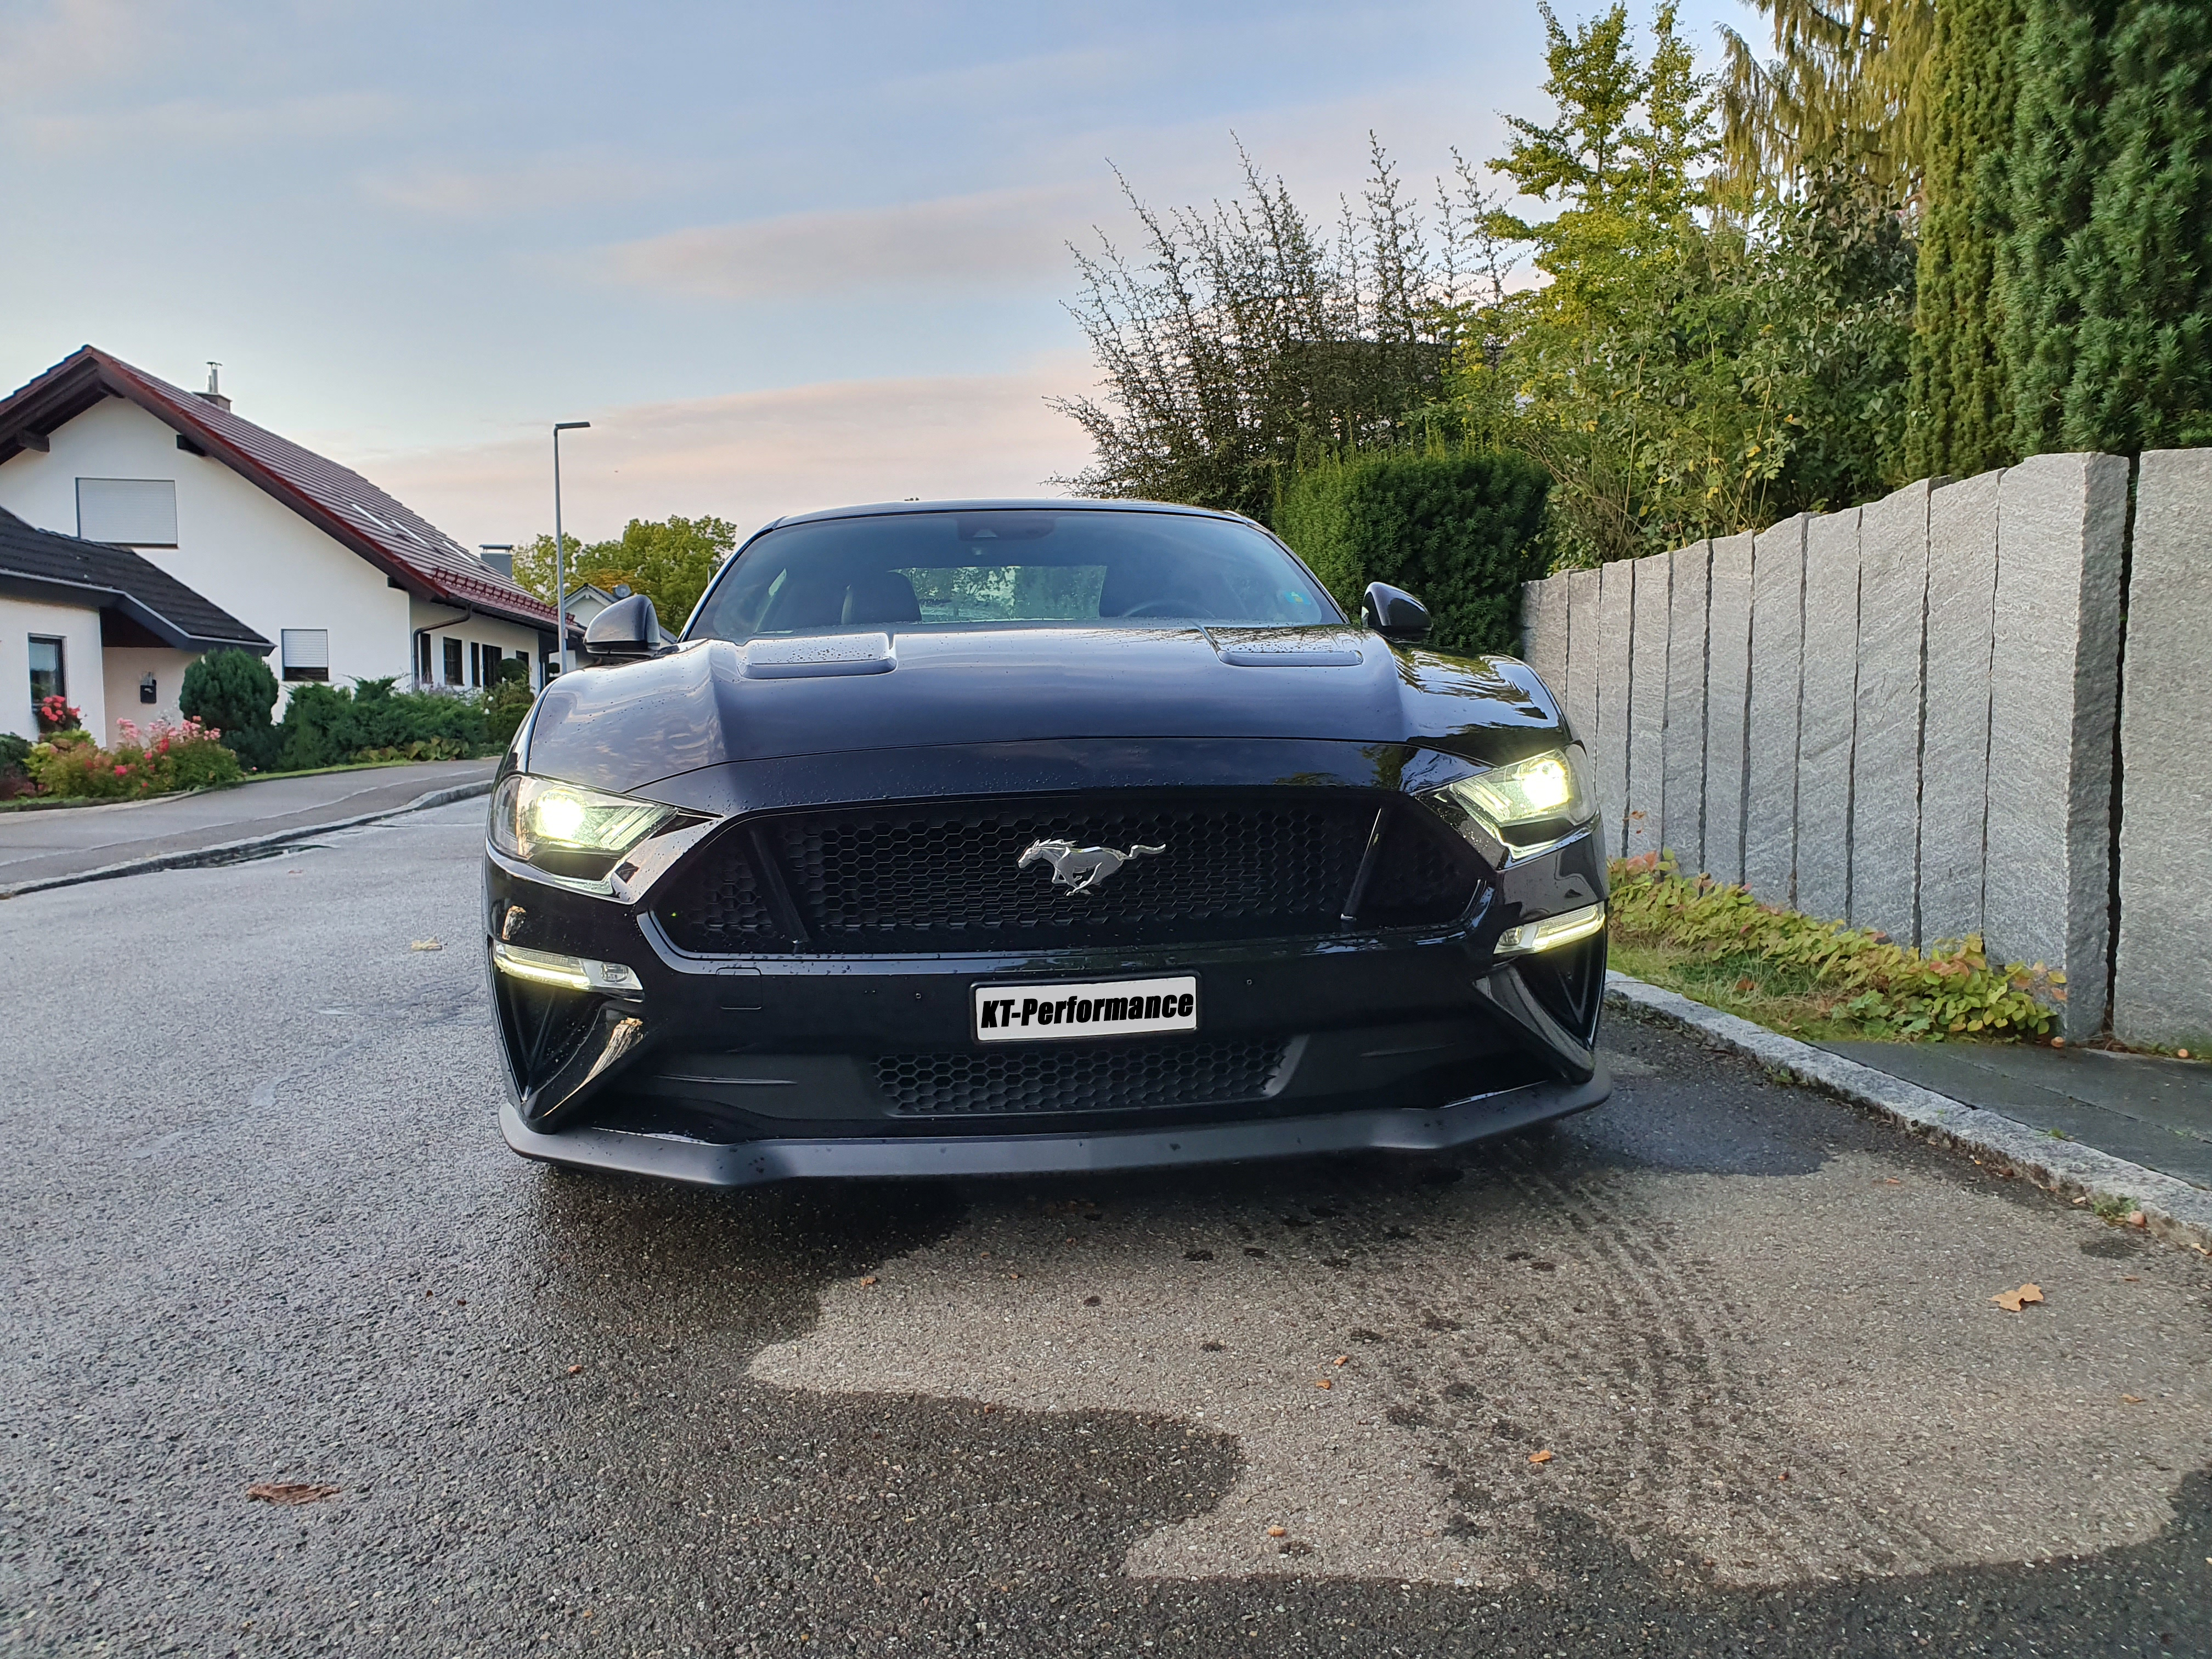 ford-mustang-gt-5.0-chiptuning-14